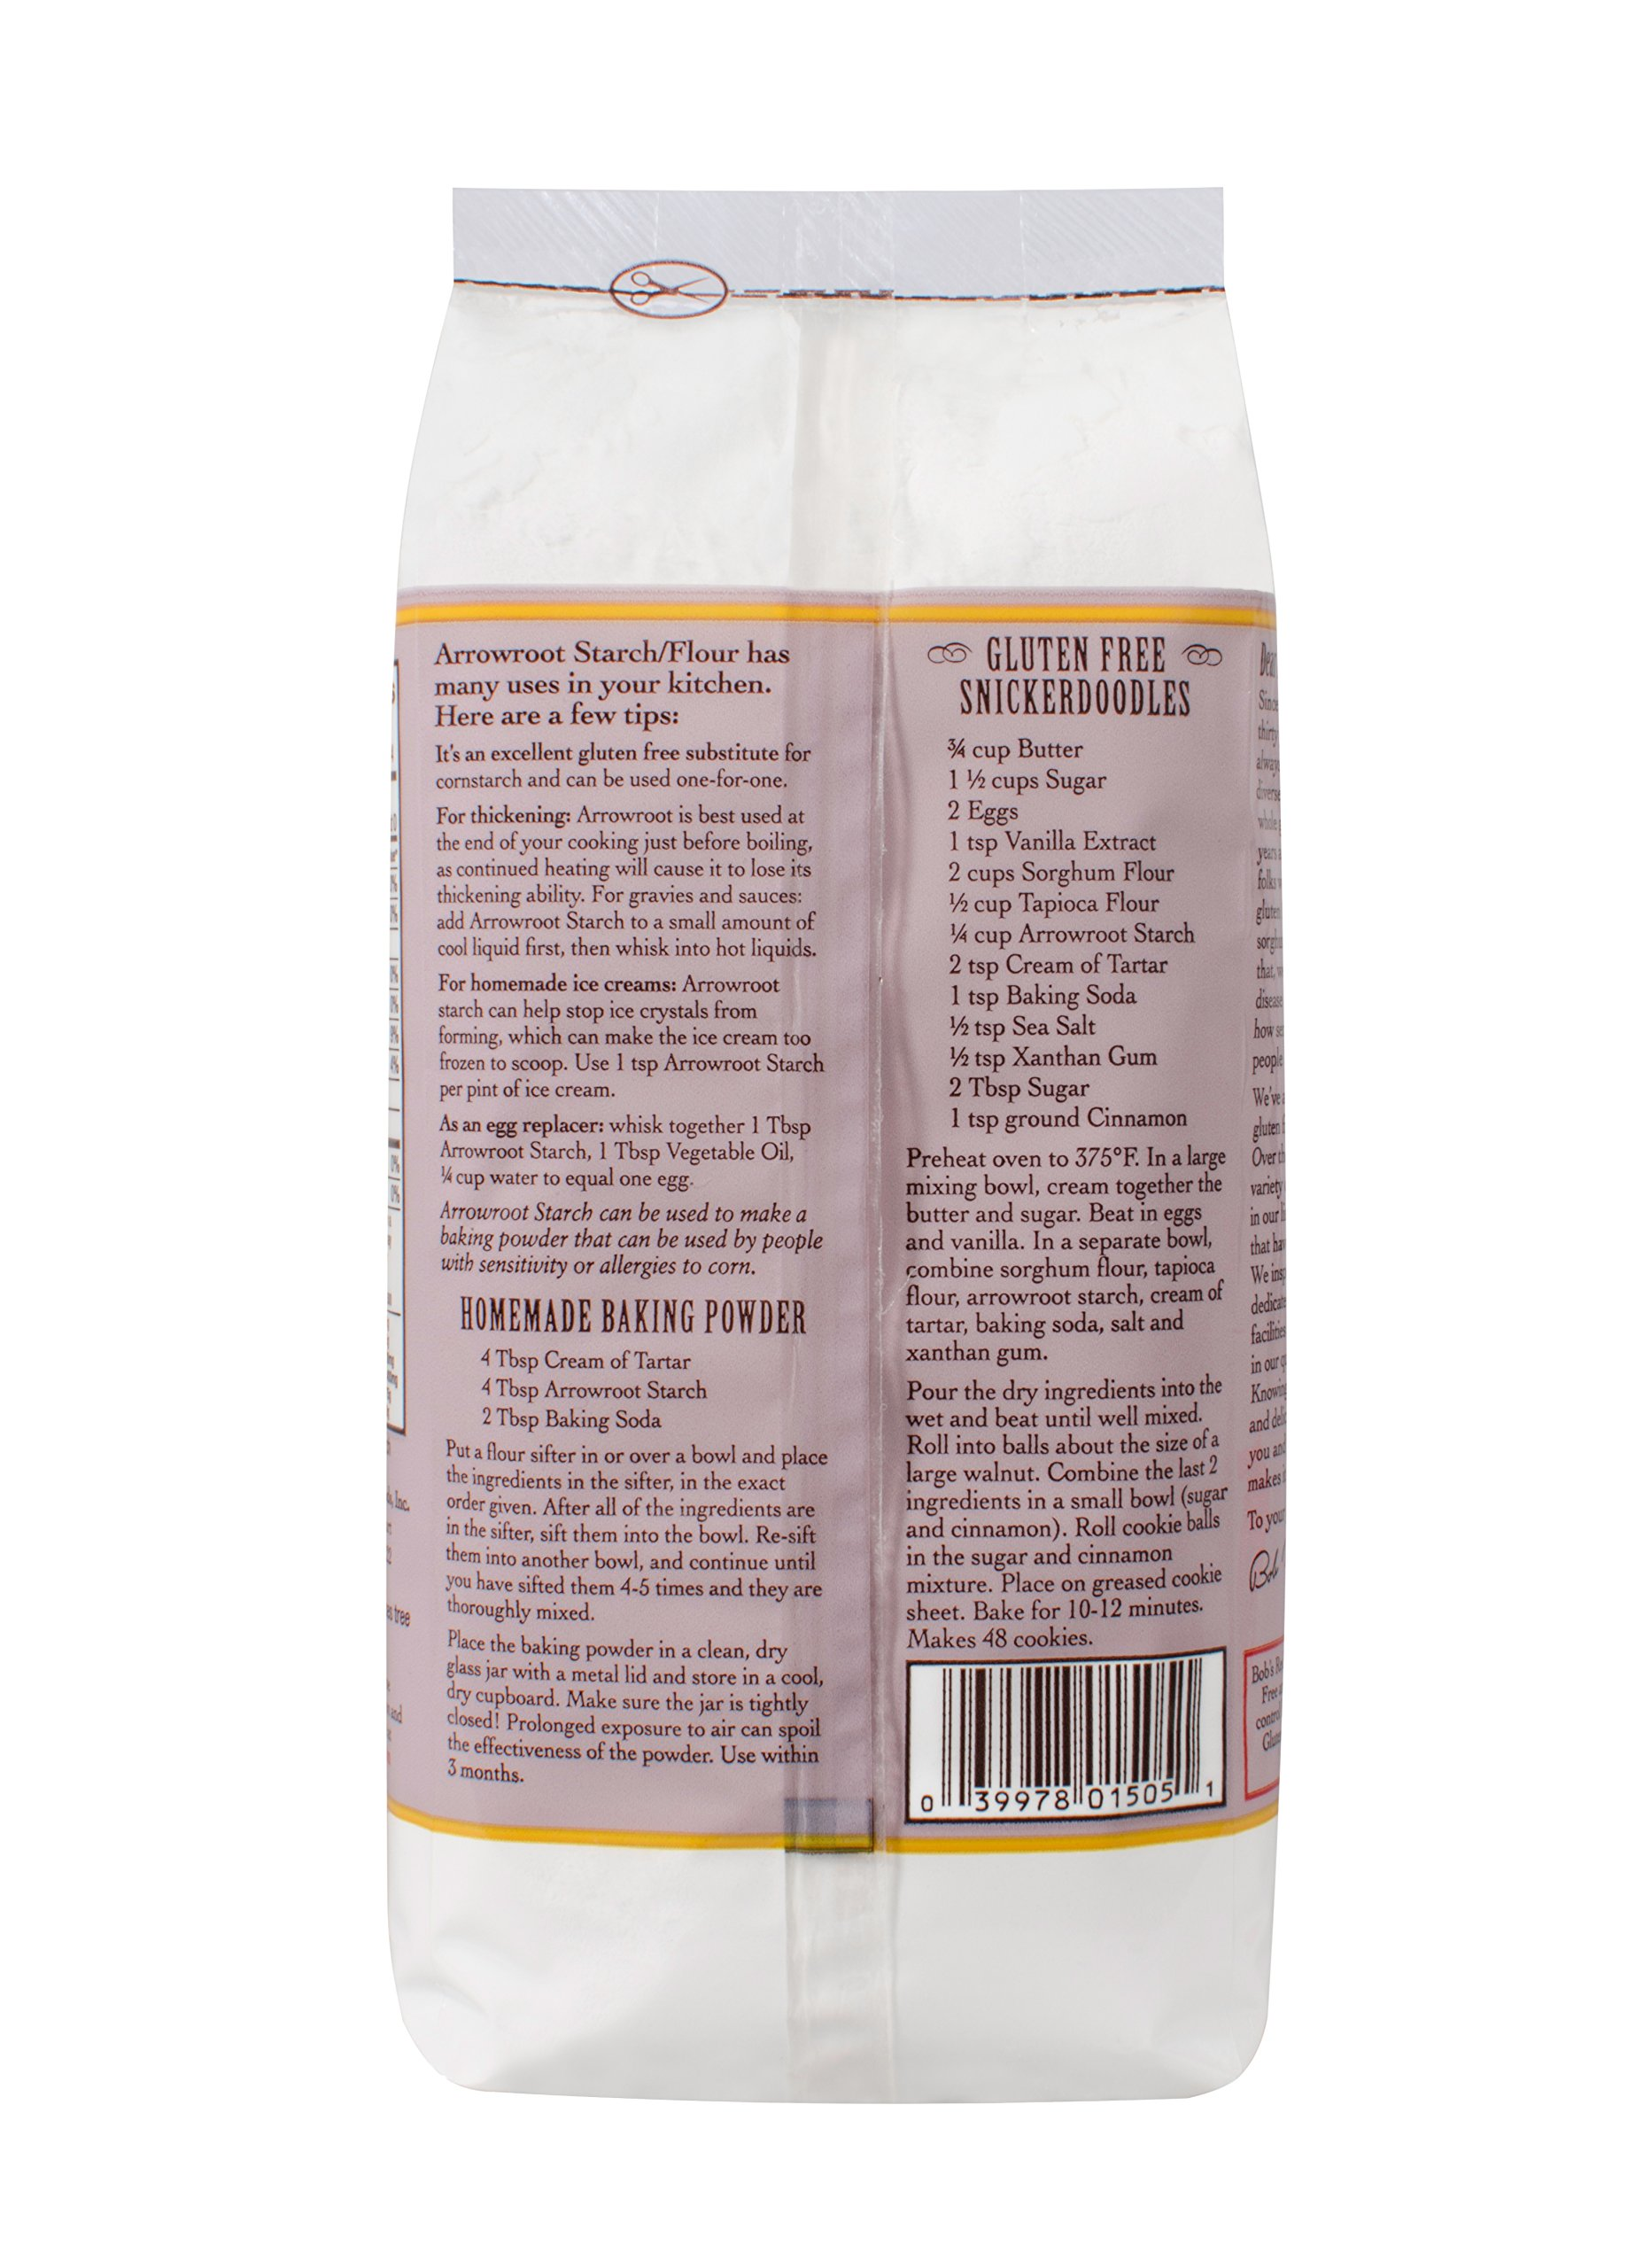 Bob's Red Mill Arrowroot Starch / Flour, 16 Ounces (Packaging May Vary) by Bob's Red Mill (Image #4)